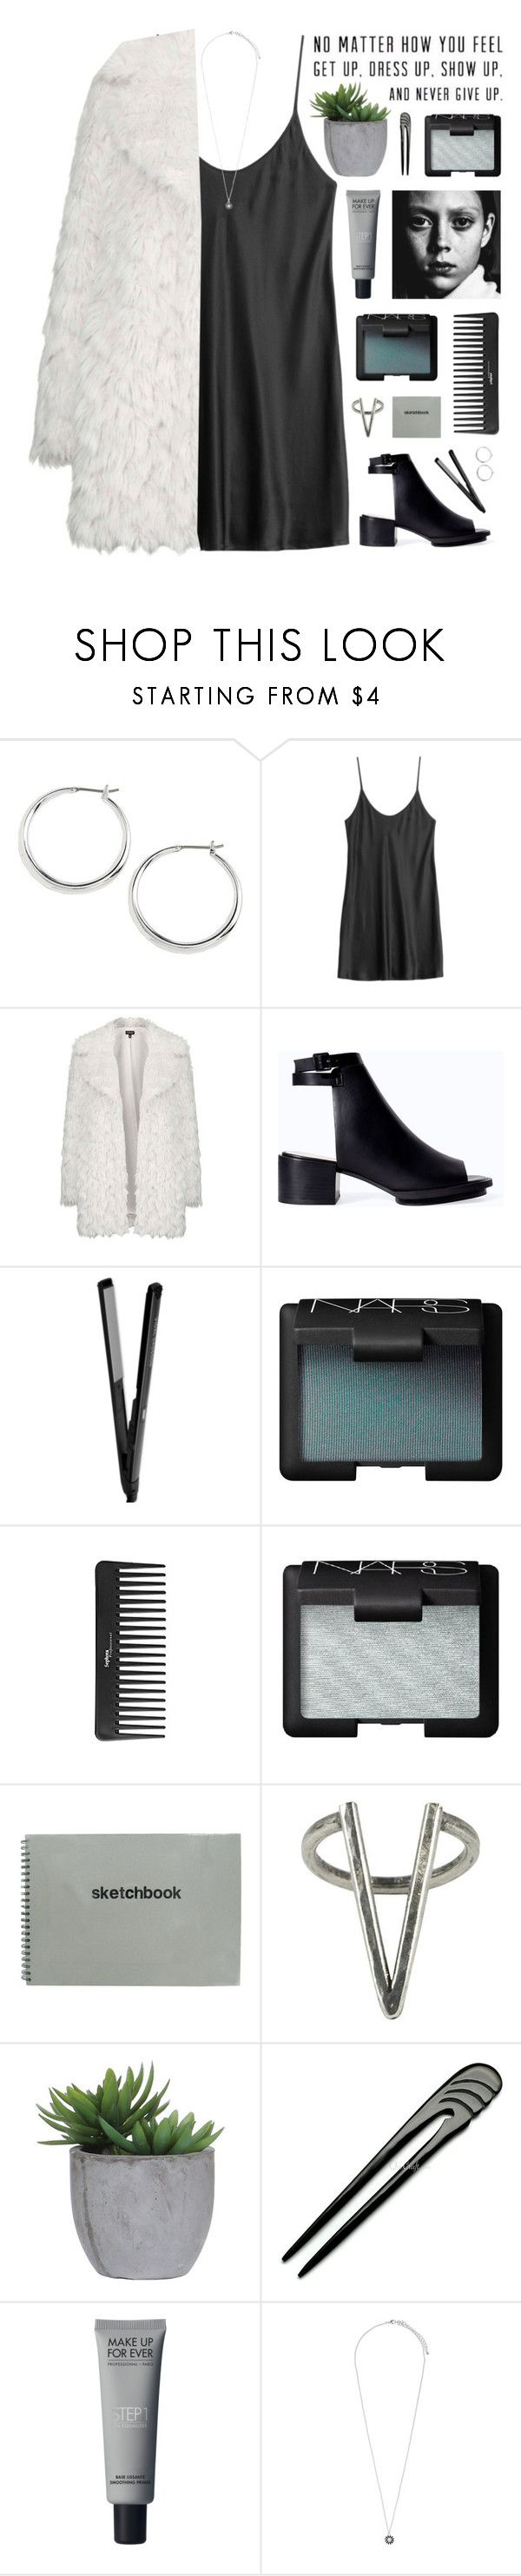 """""""//topshop fur coat//"""" by lion-smile ❤ liked on Polyvore featuring Lauren Ralph Lauren, La Perla, Topshop, Zara, NARS Cosmetics, Sephora Collection, The 2 Bandits, Lux-Art Silks, Pieces and women's clothing"""